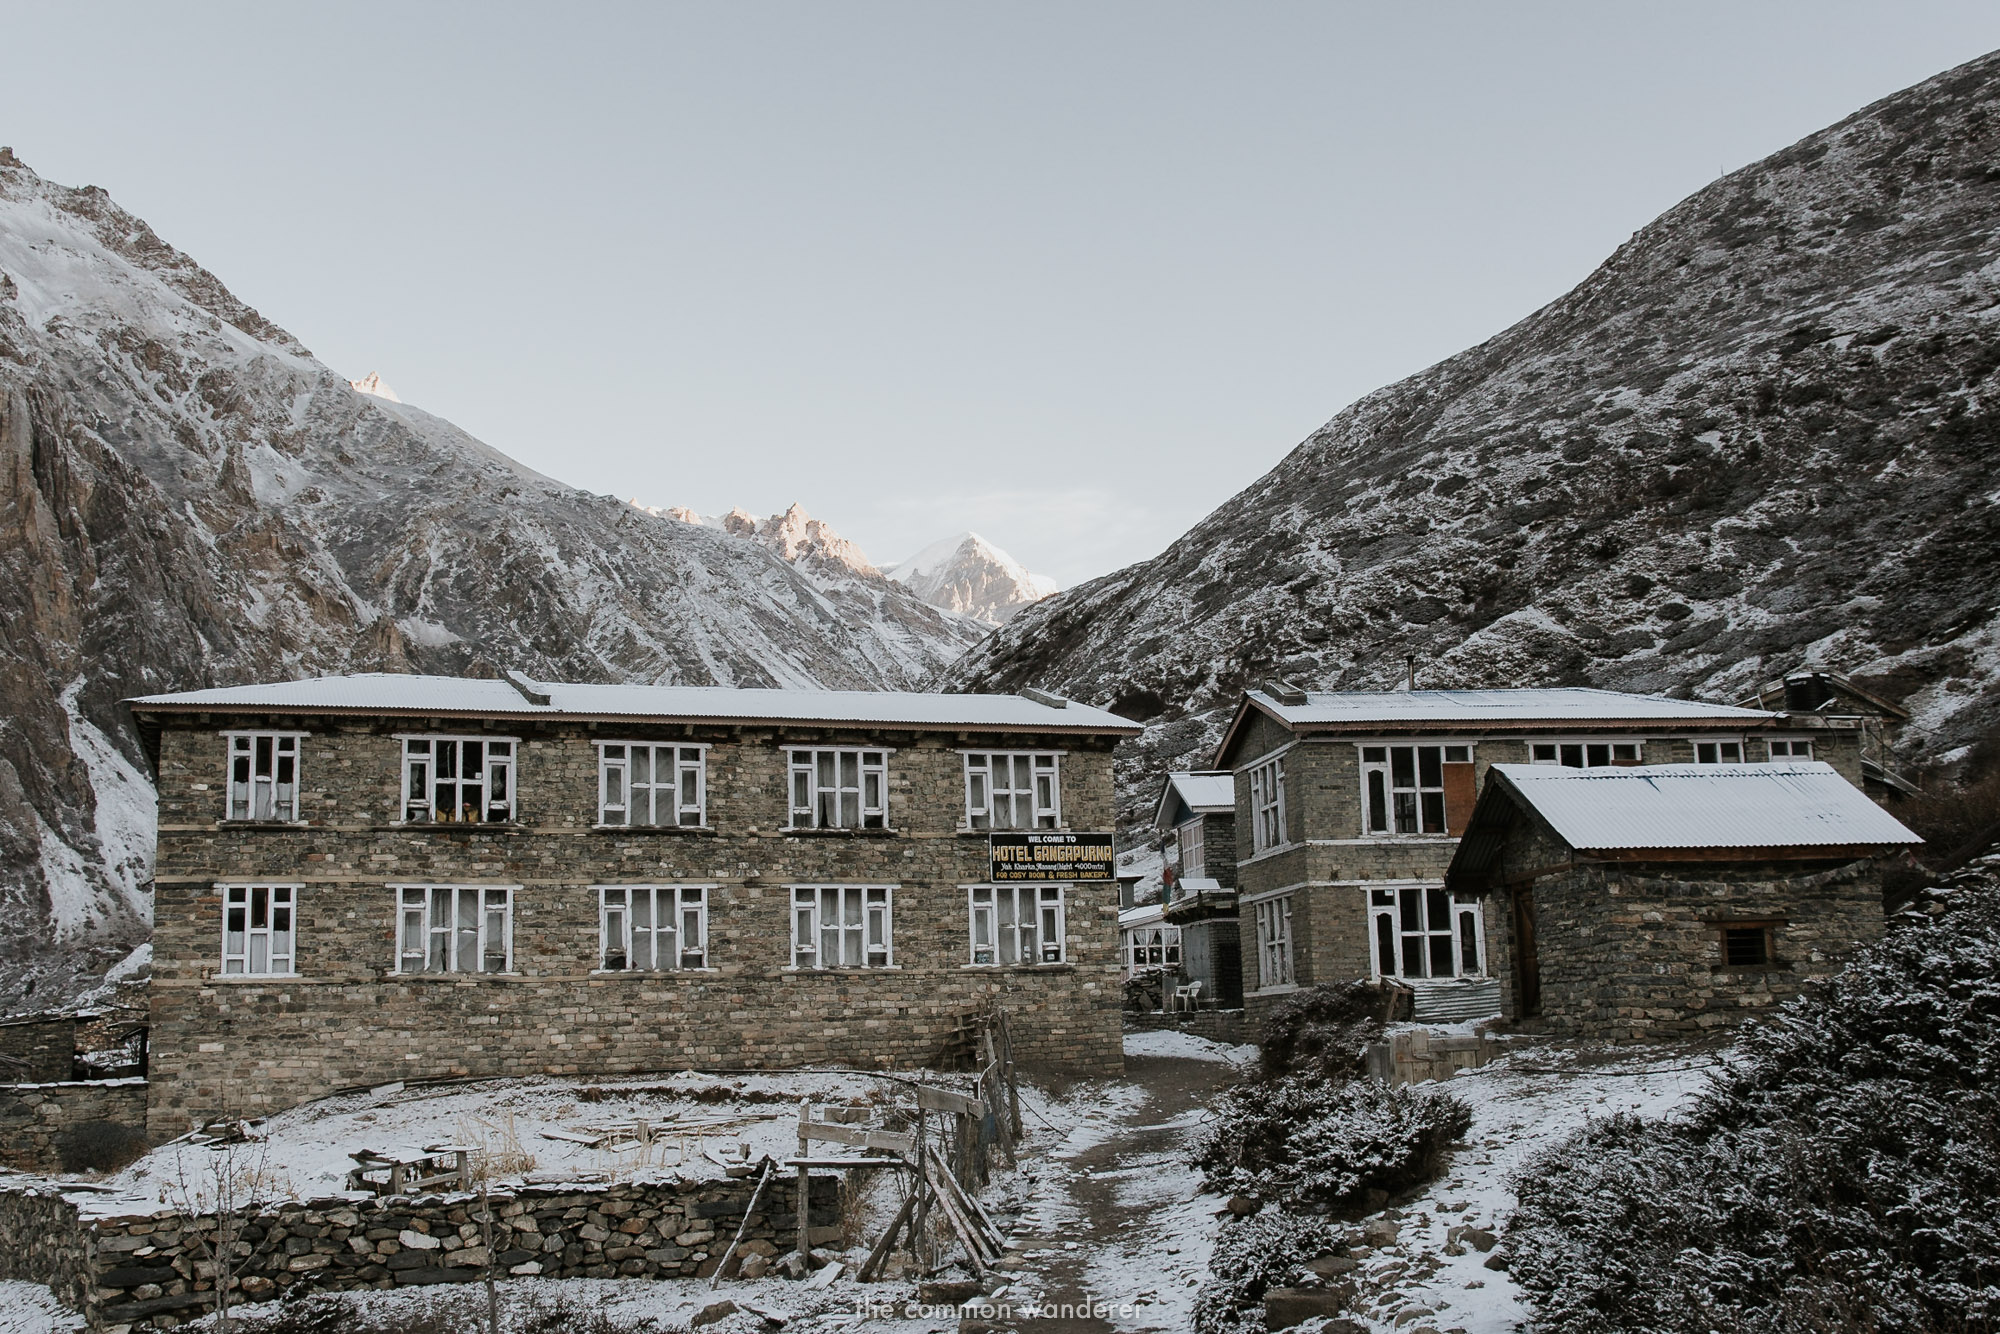 Accommodation on the Annapurna circuit trek, Nepal